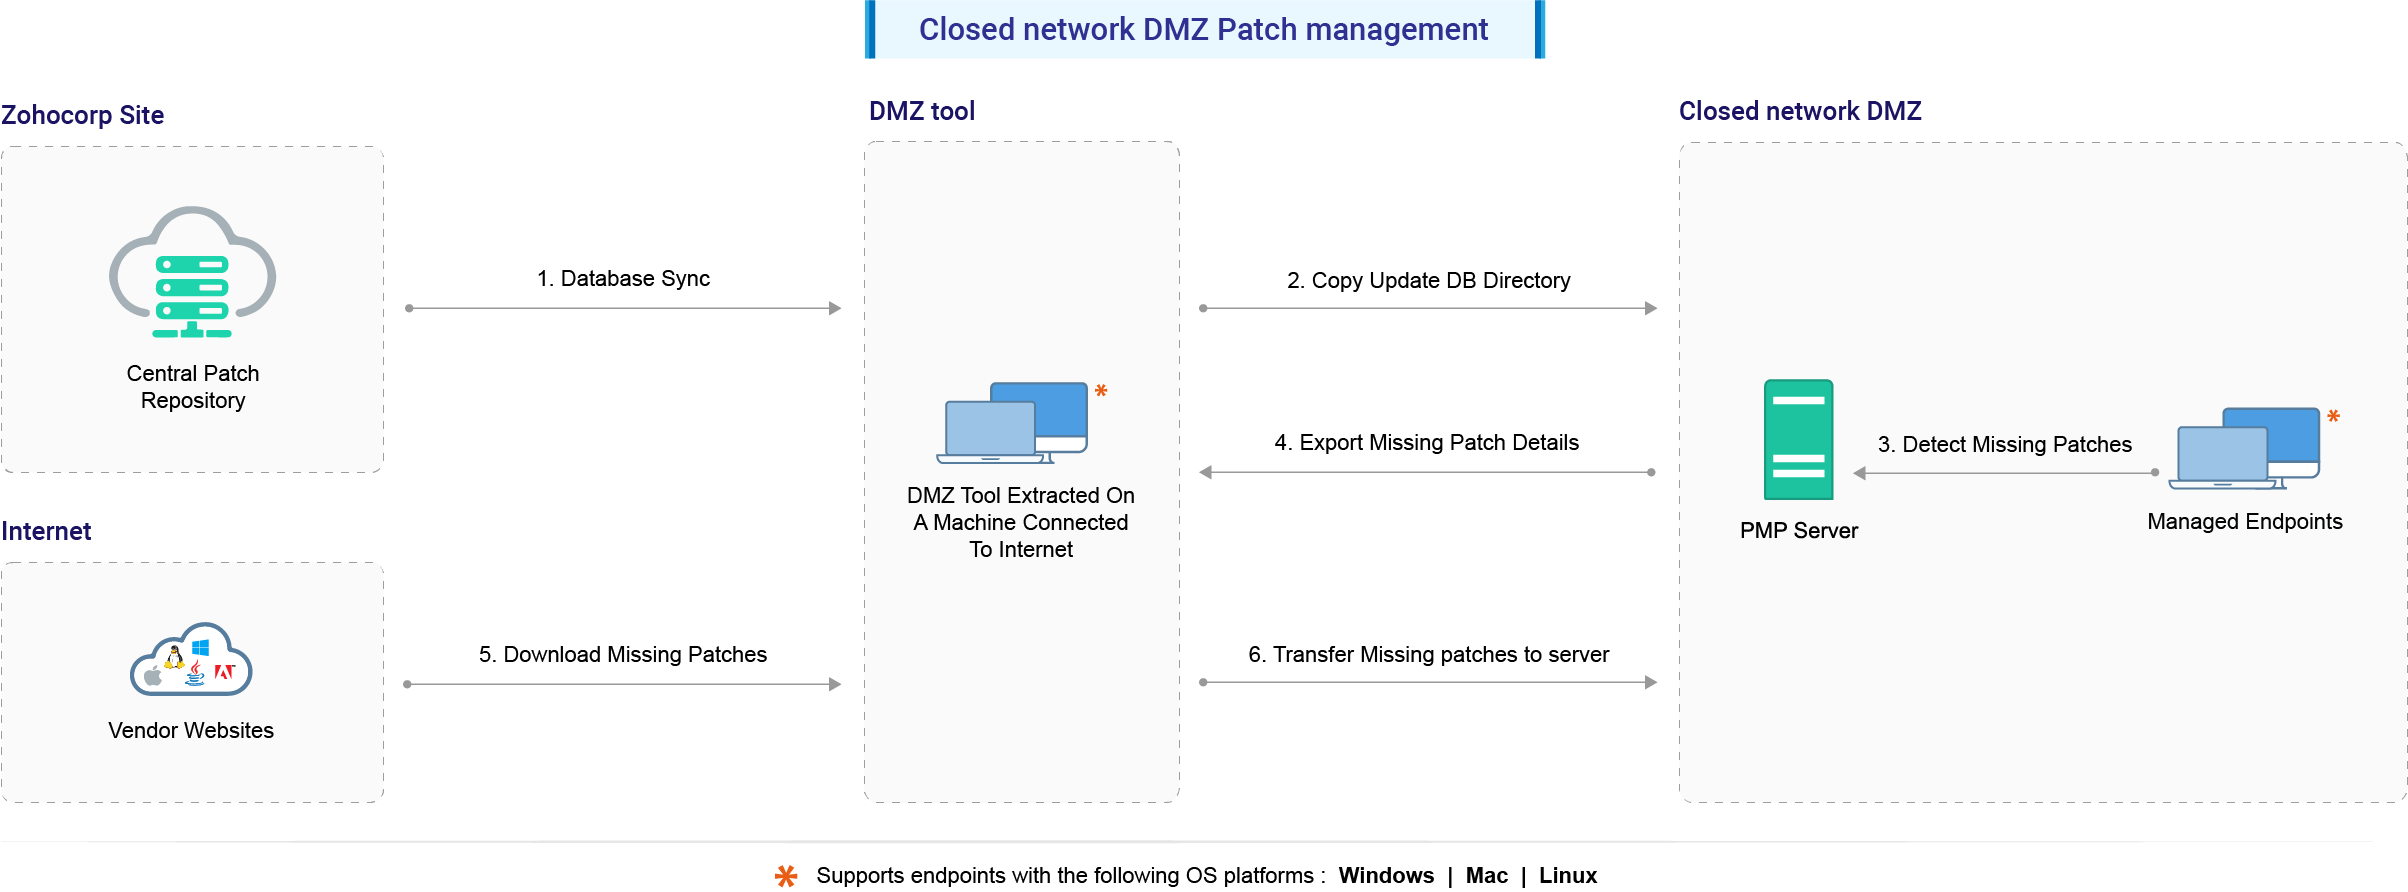 closednetworkpatching